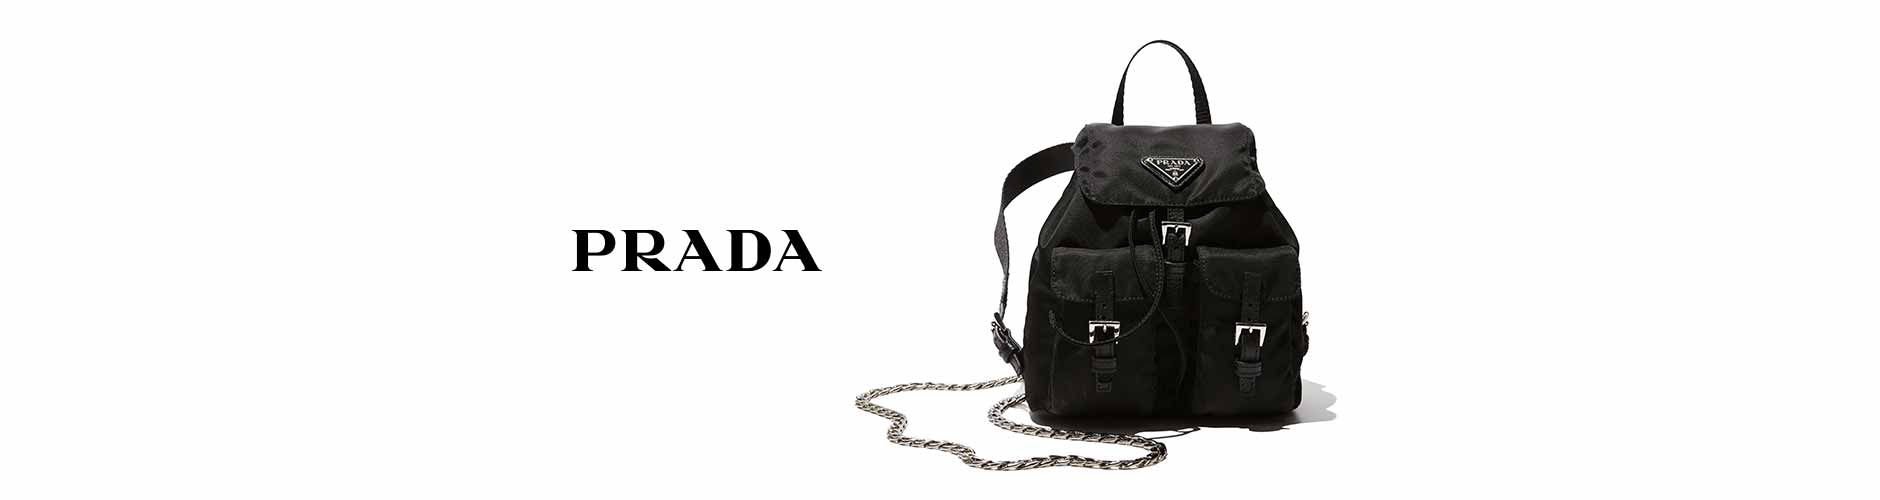 prada dark brown leather handbag - prada backpack blue